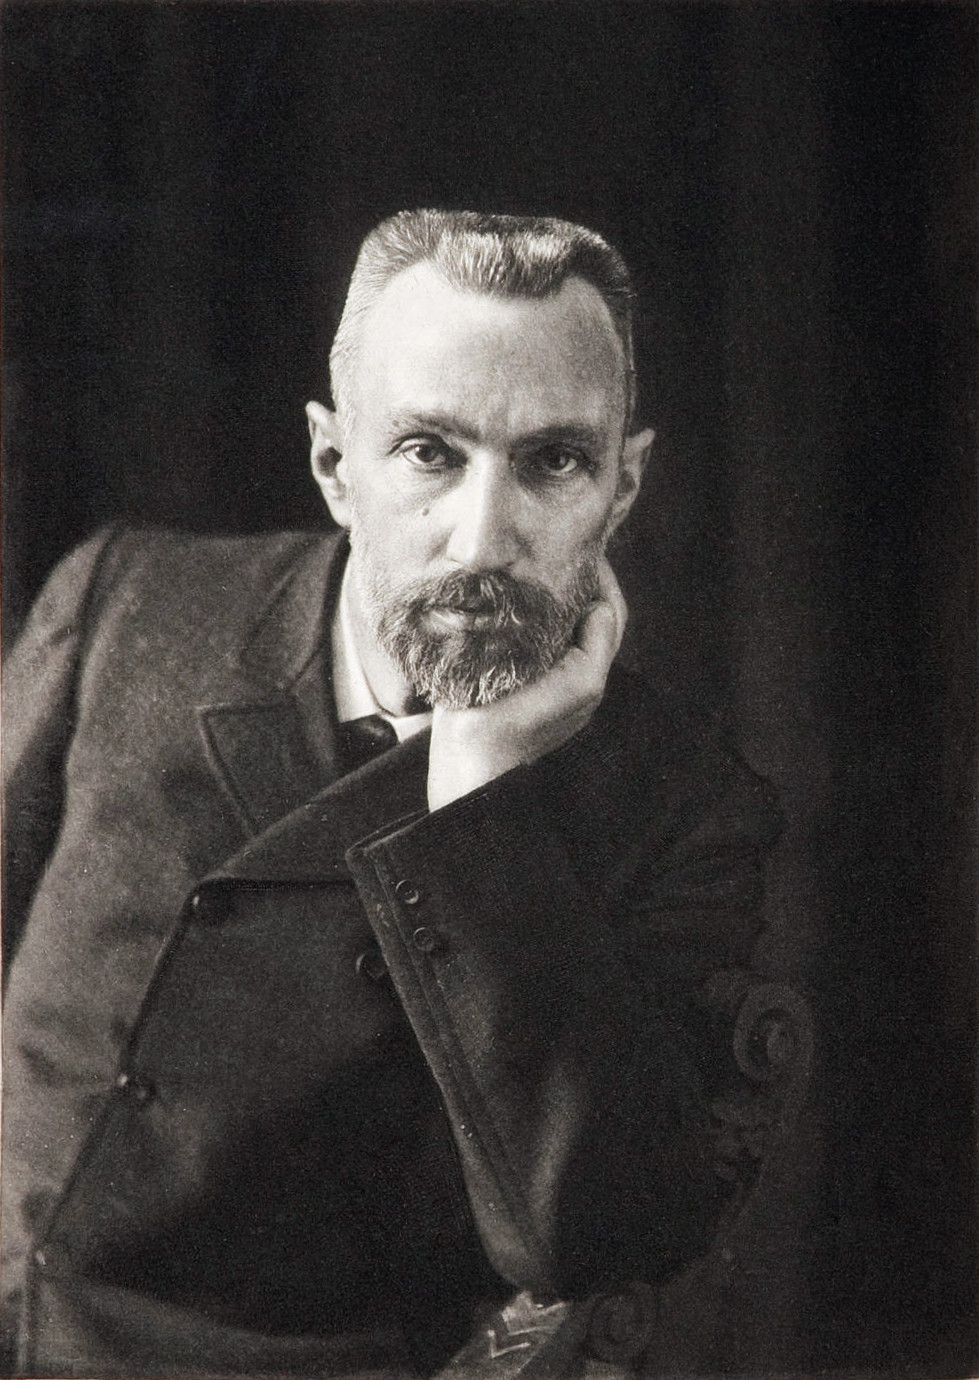 Pierre curie wikipedia for Dujardin pierre